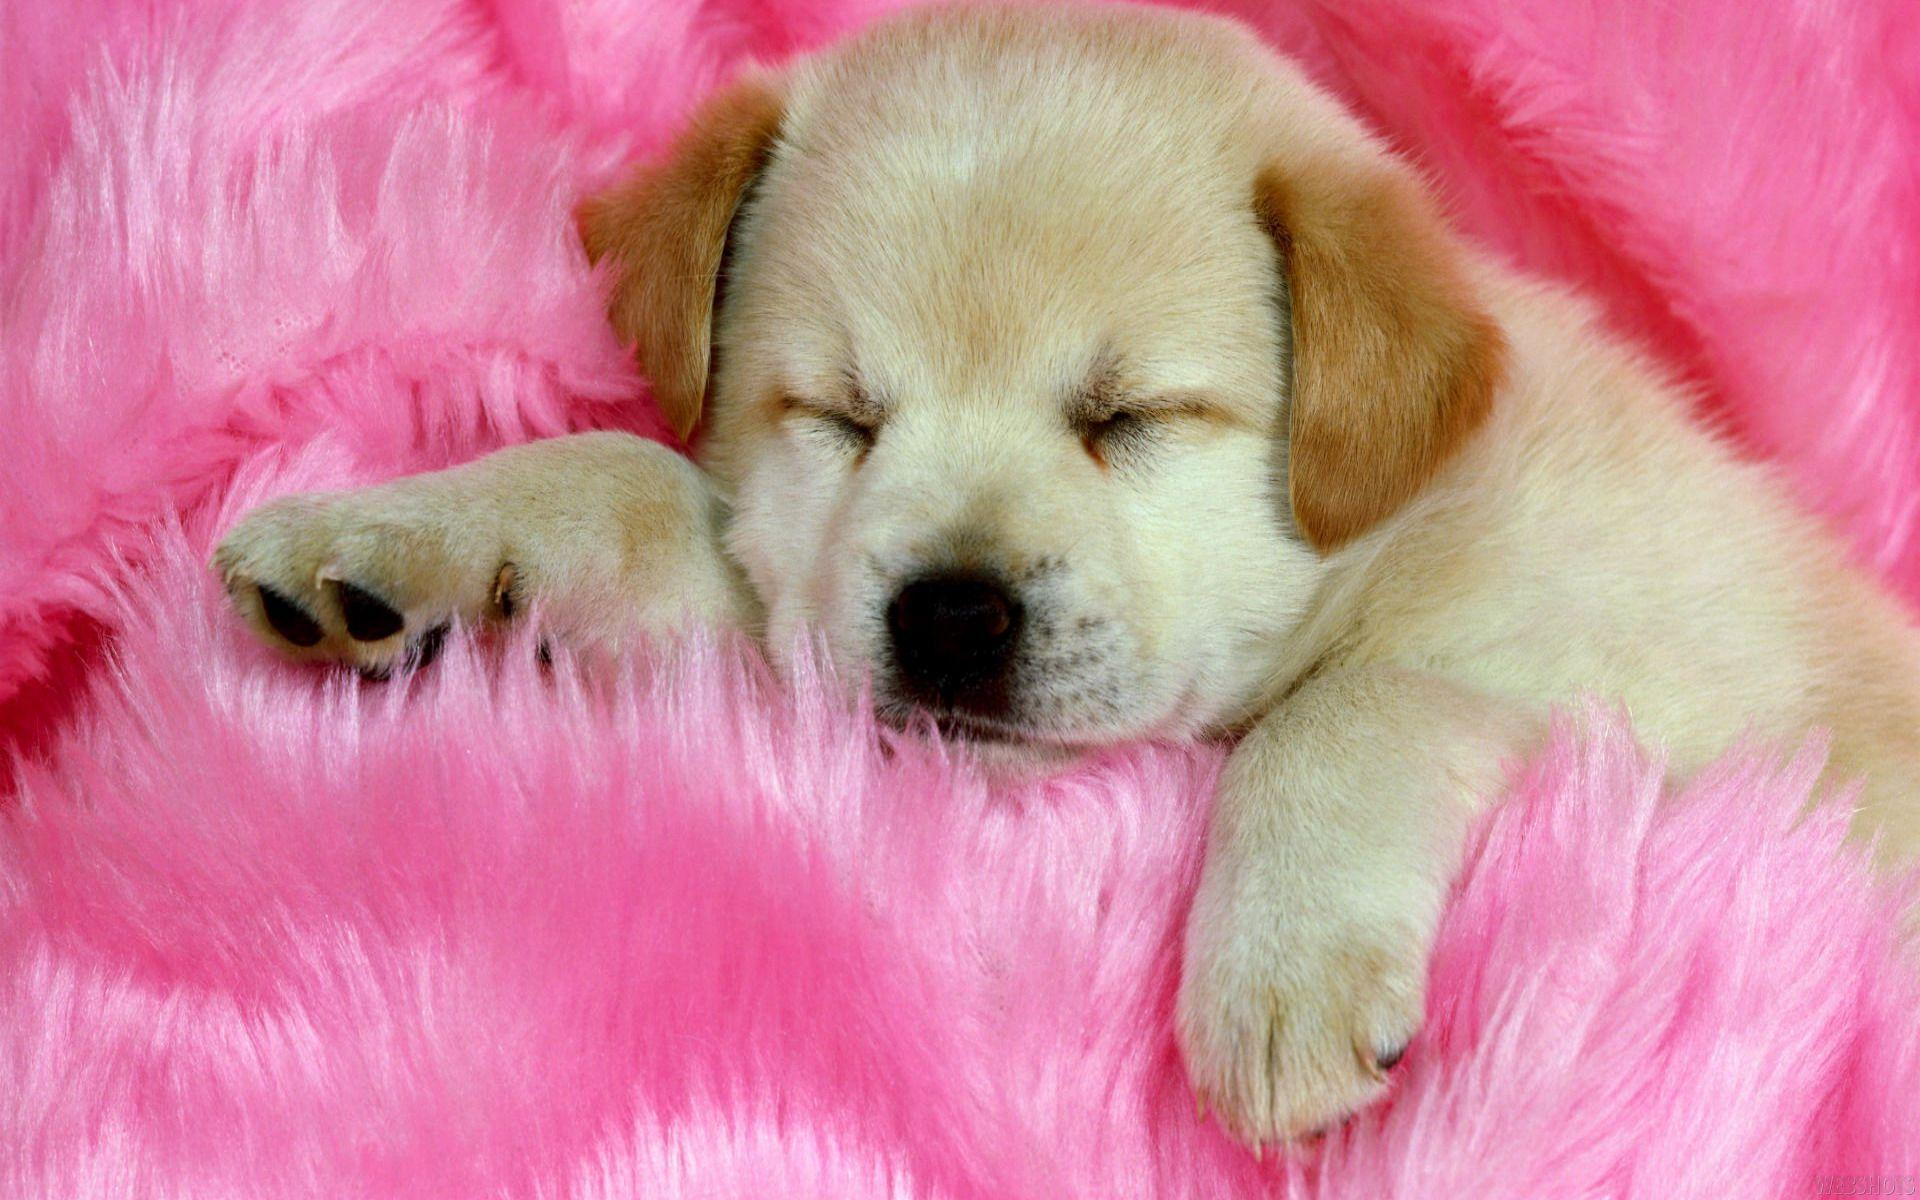 Cute Dog And Cat Wallpaper Wallpapers